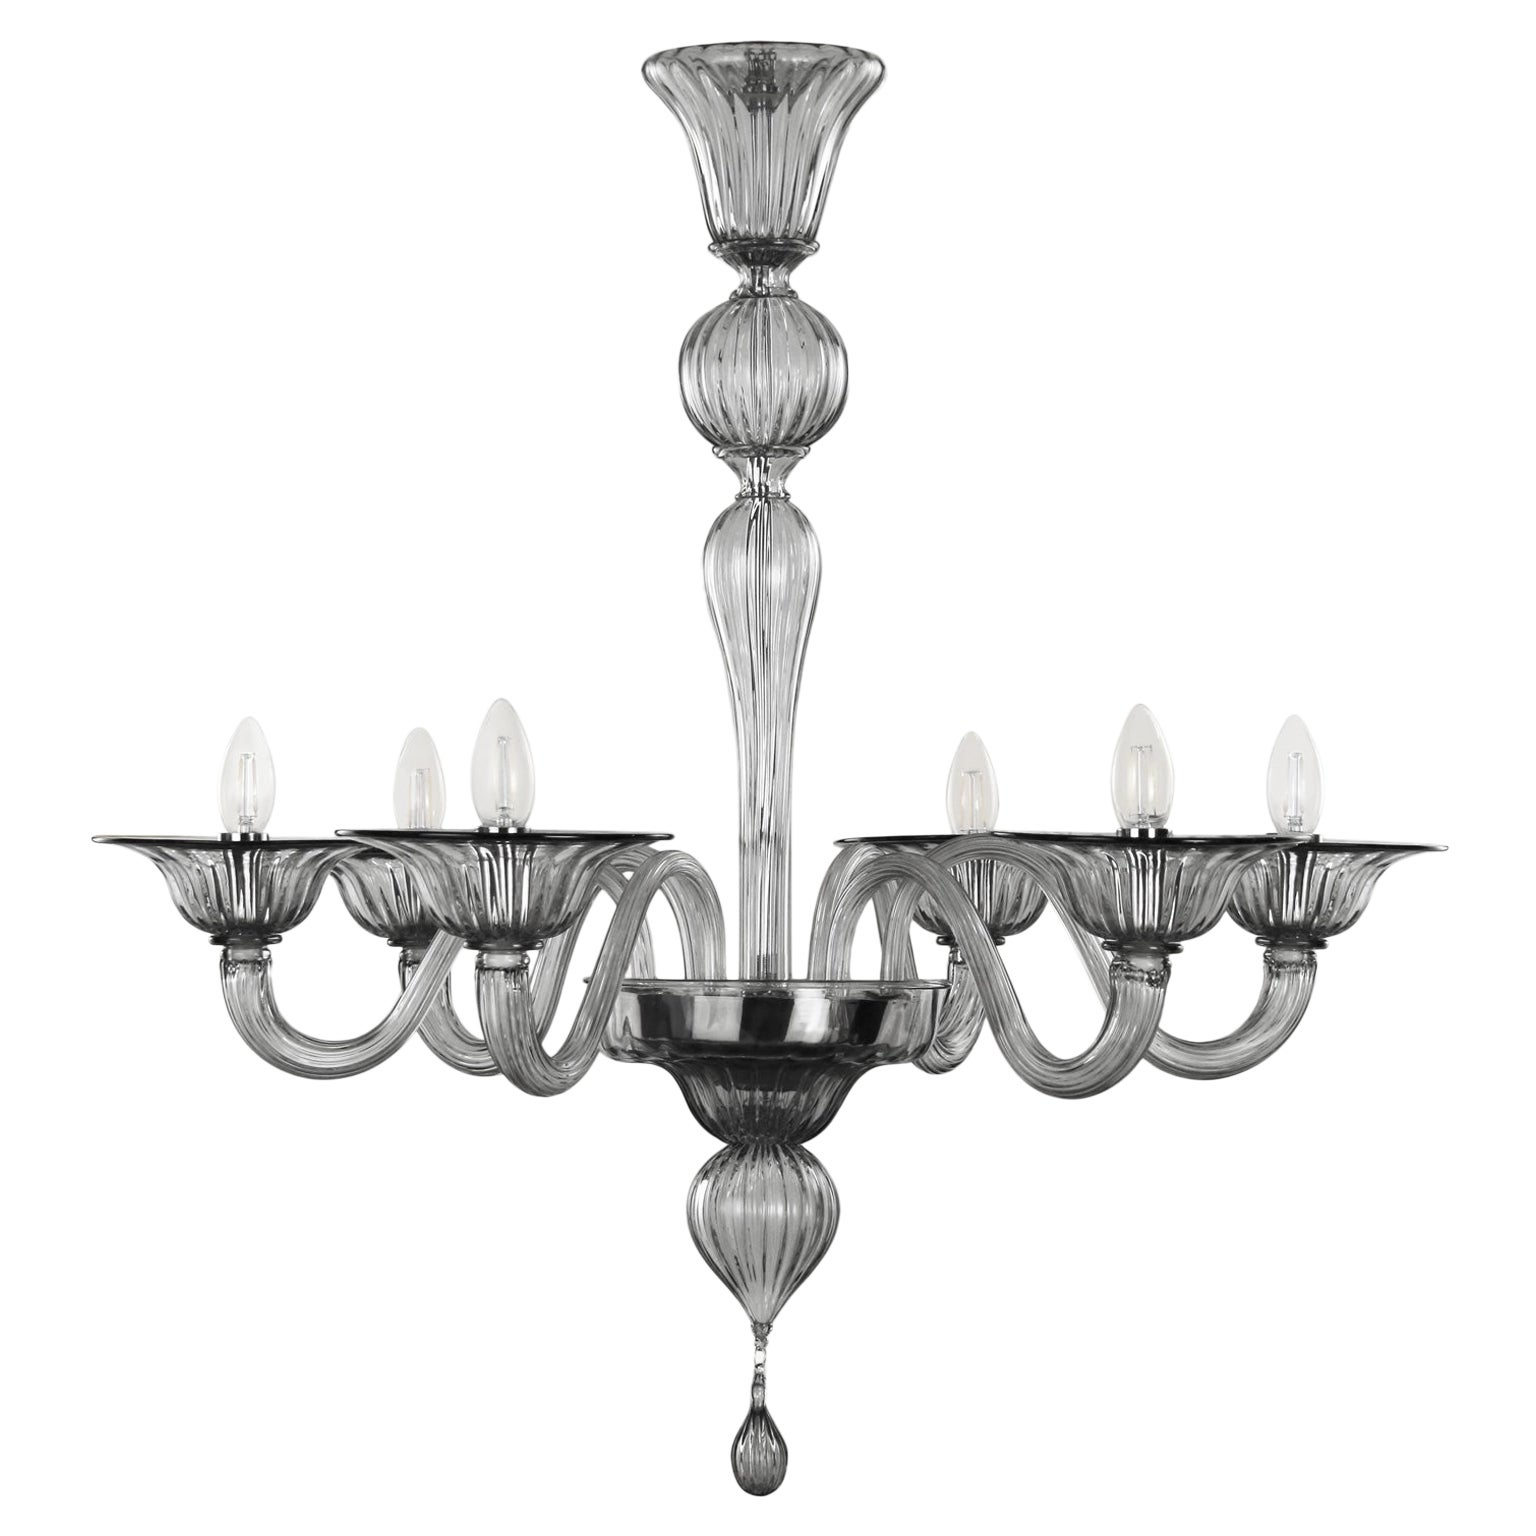 21st Century Chandelier, 6 arms Light Grey Murano Glass by Multiforme